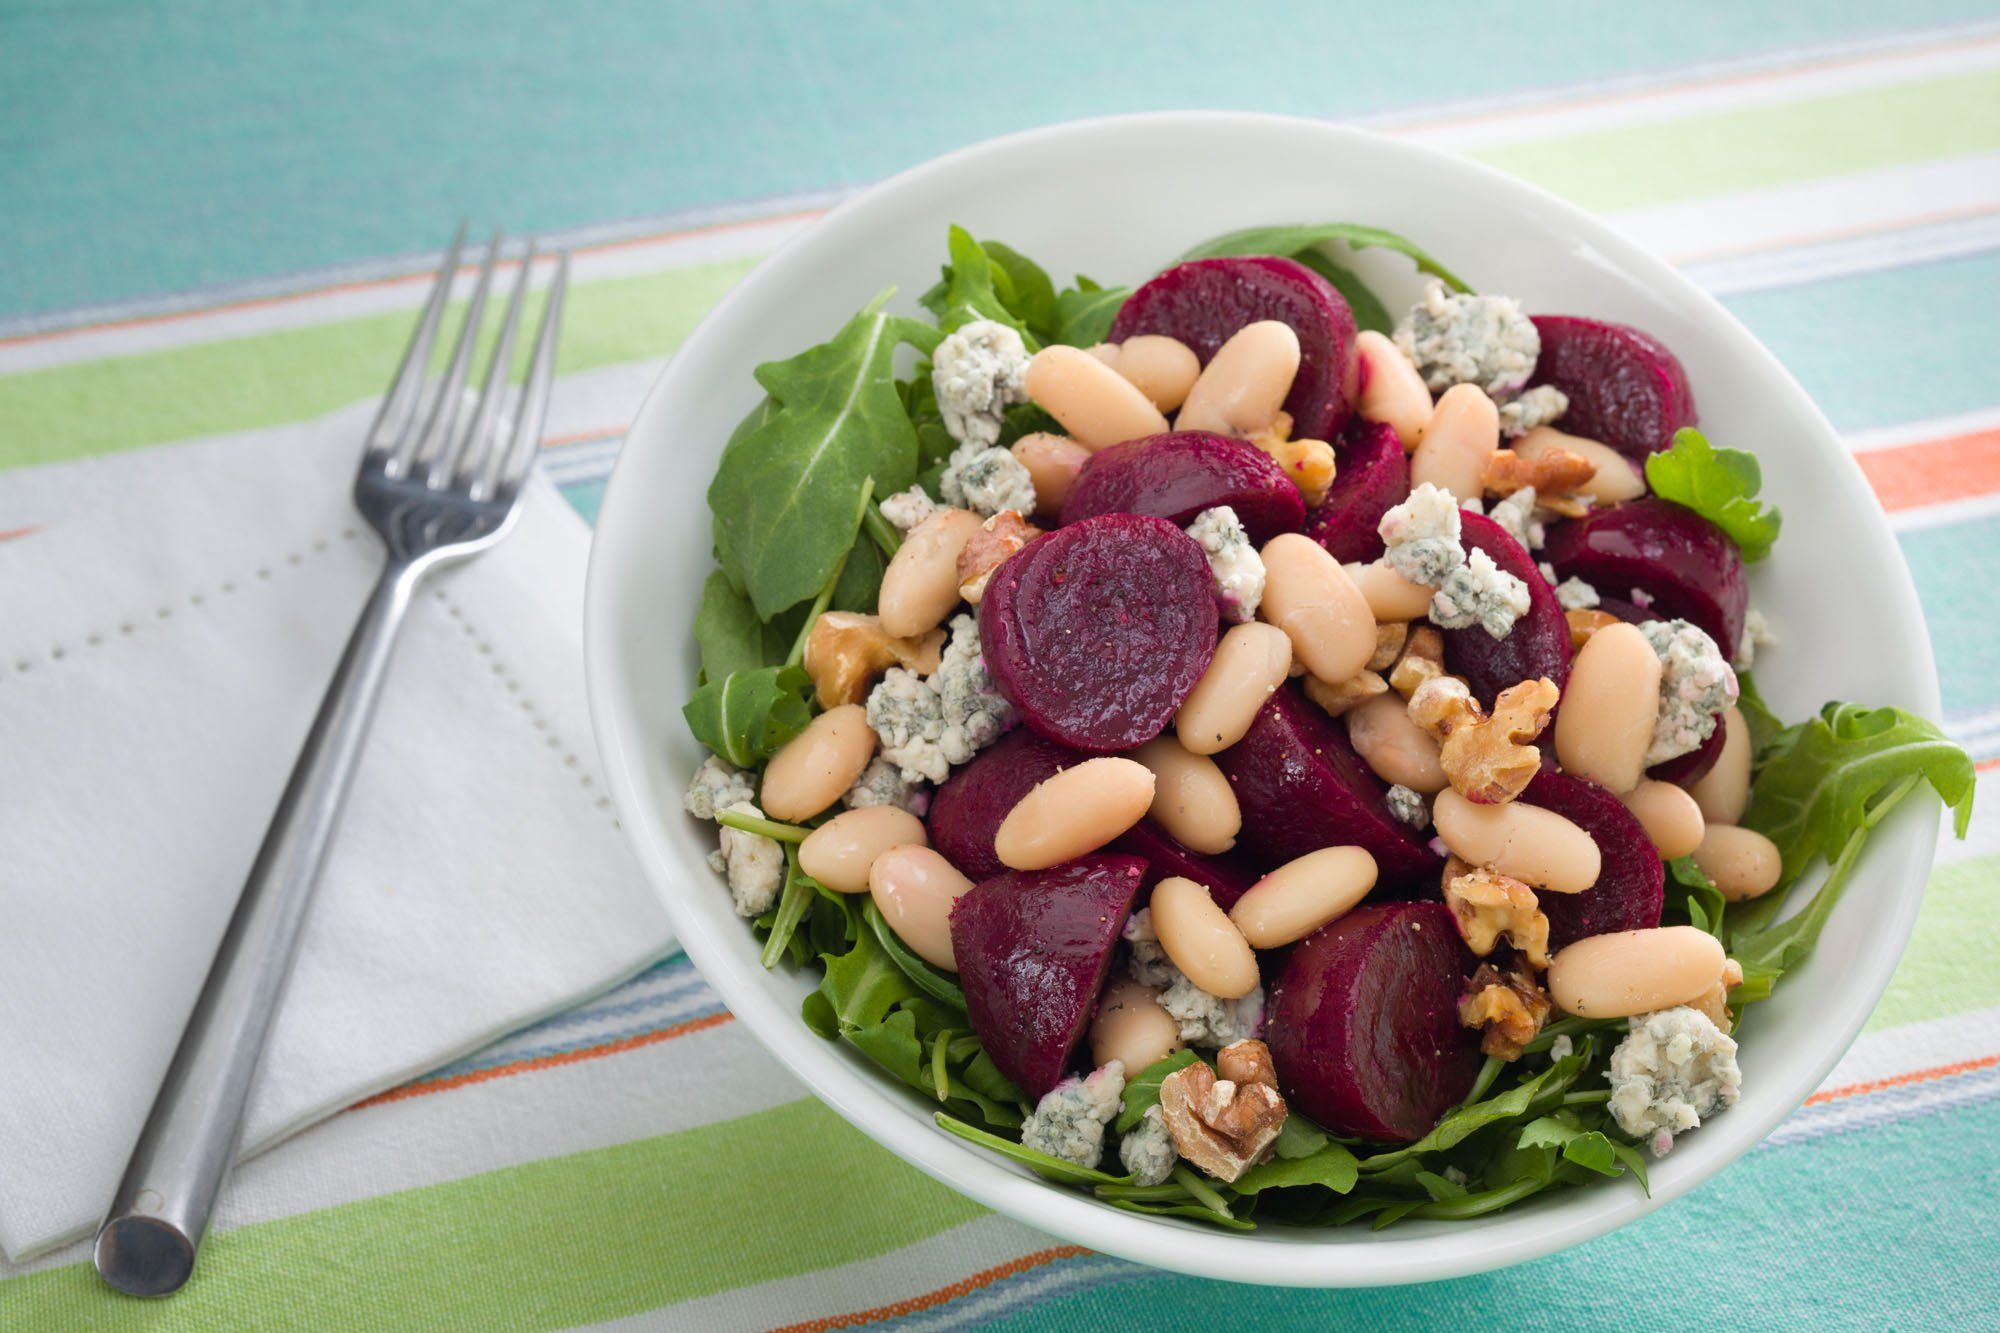 Beet And White Bean Salad With Images White Bean Salad White